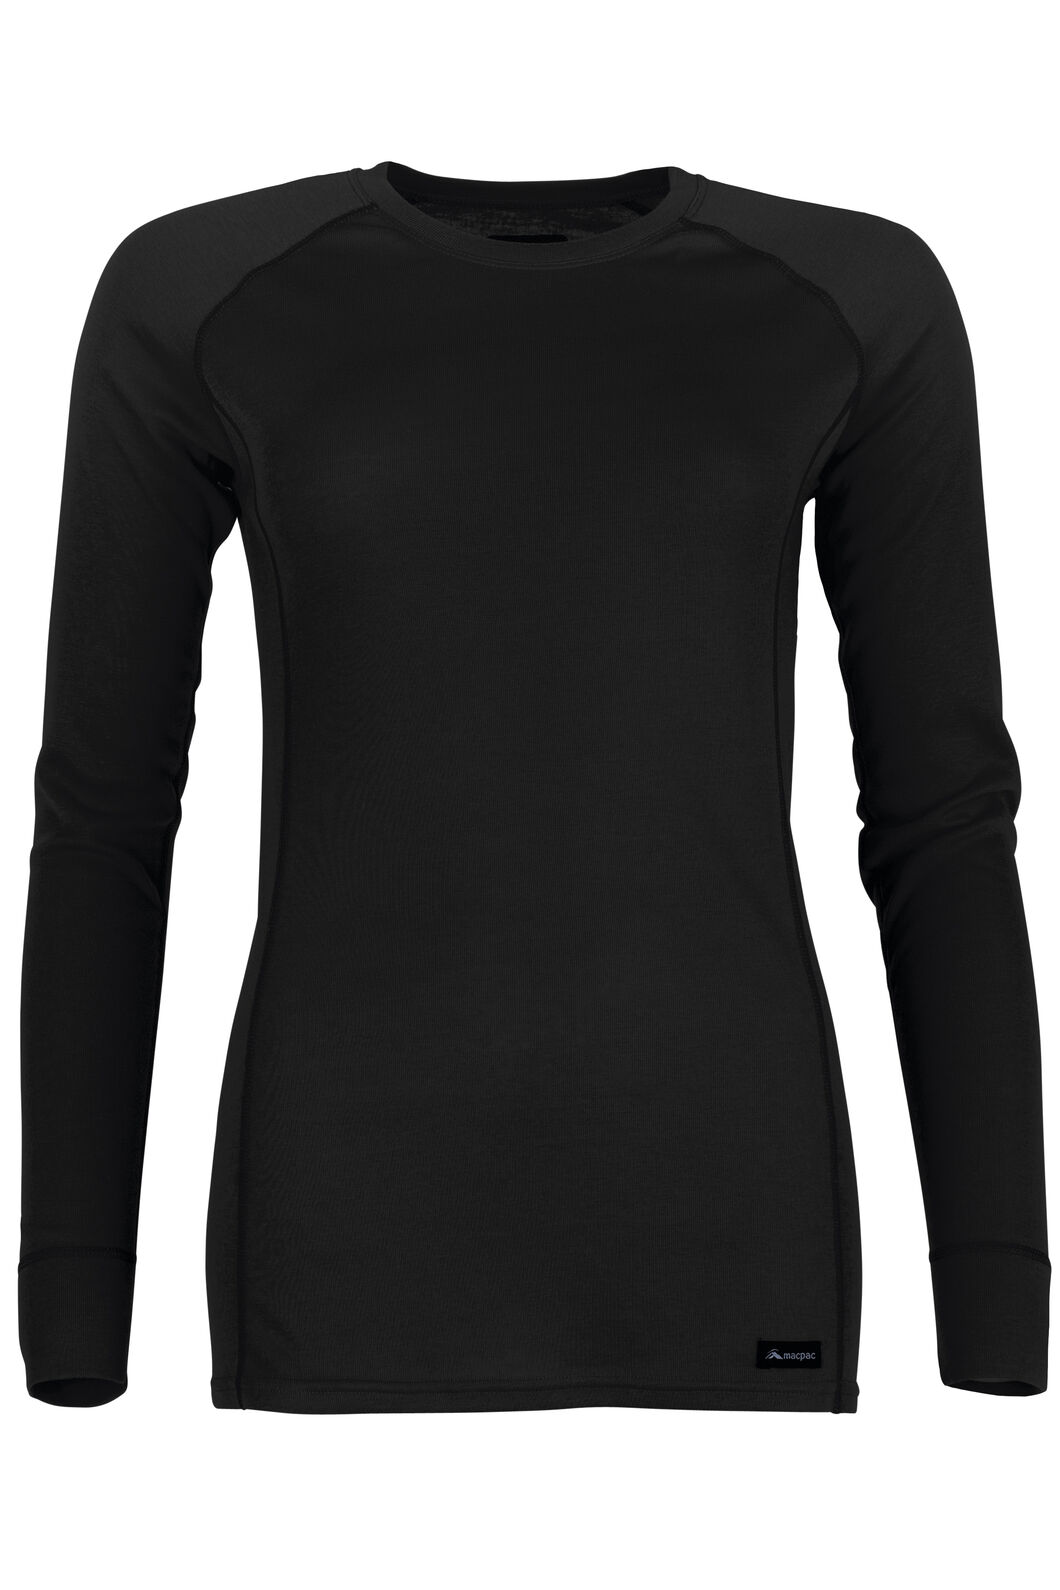 Geothermal Long Sleeve Top - Women's, Black, hi-res